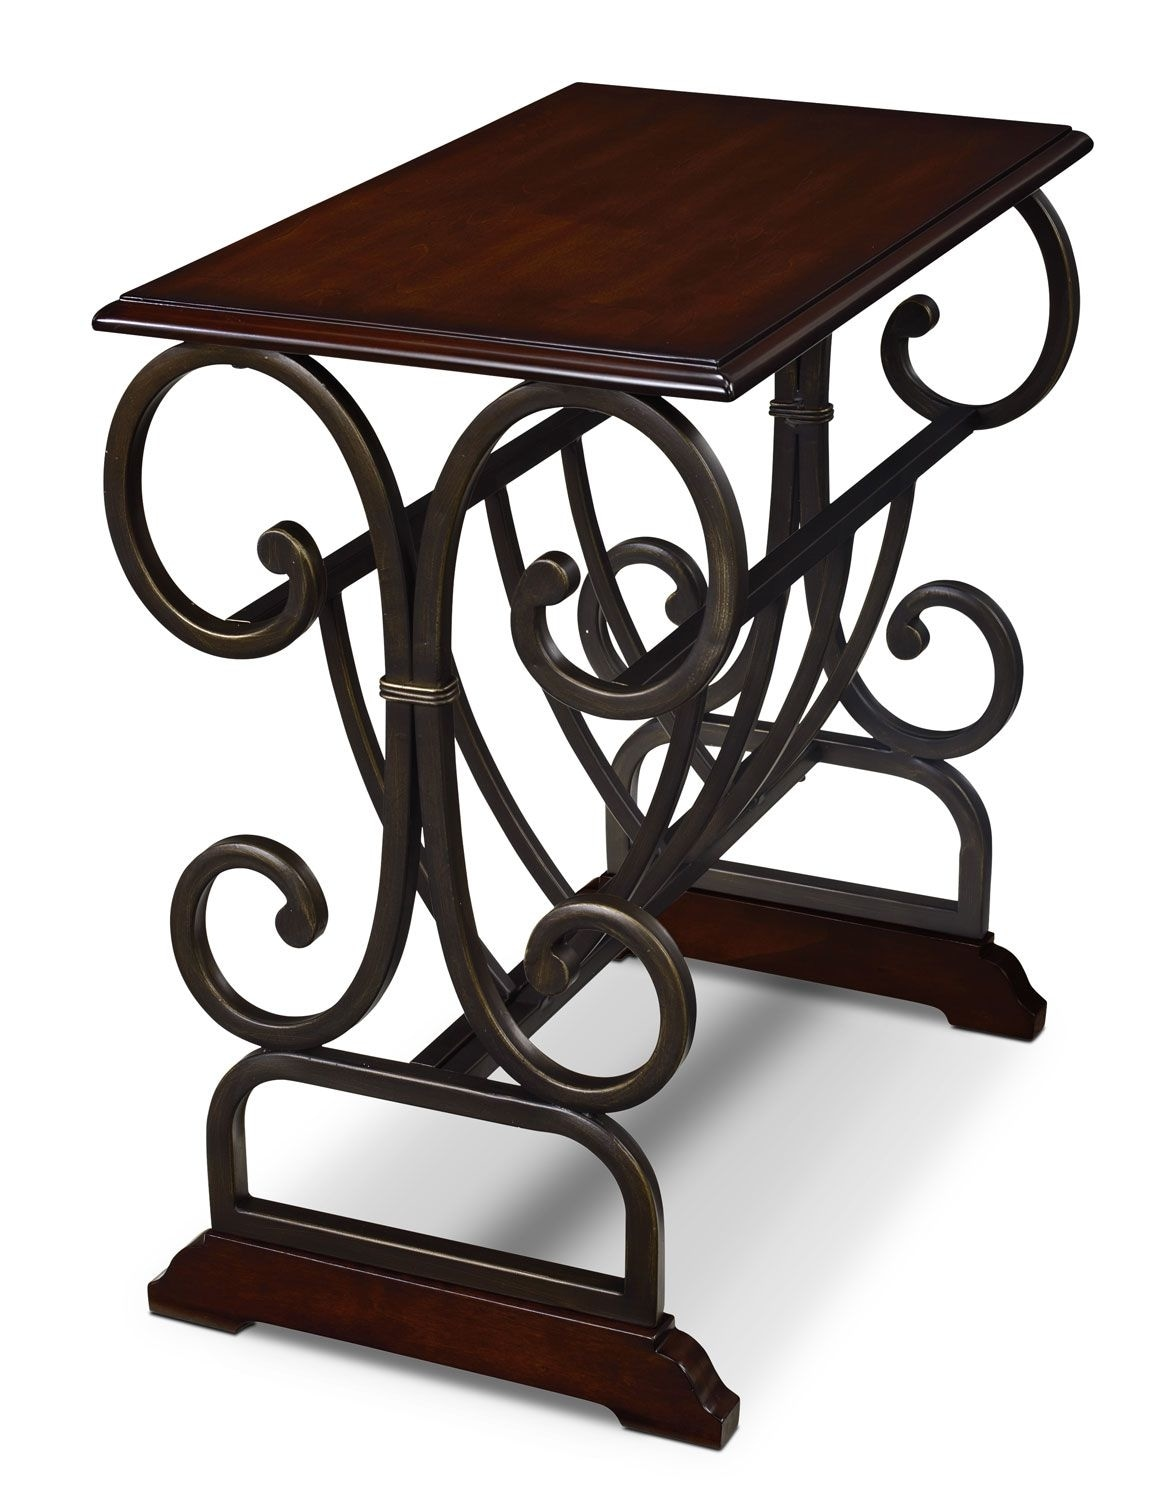 Gander Accent Table with Magazine Rack - Brown Cherry